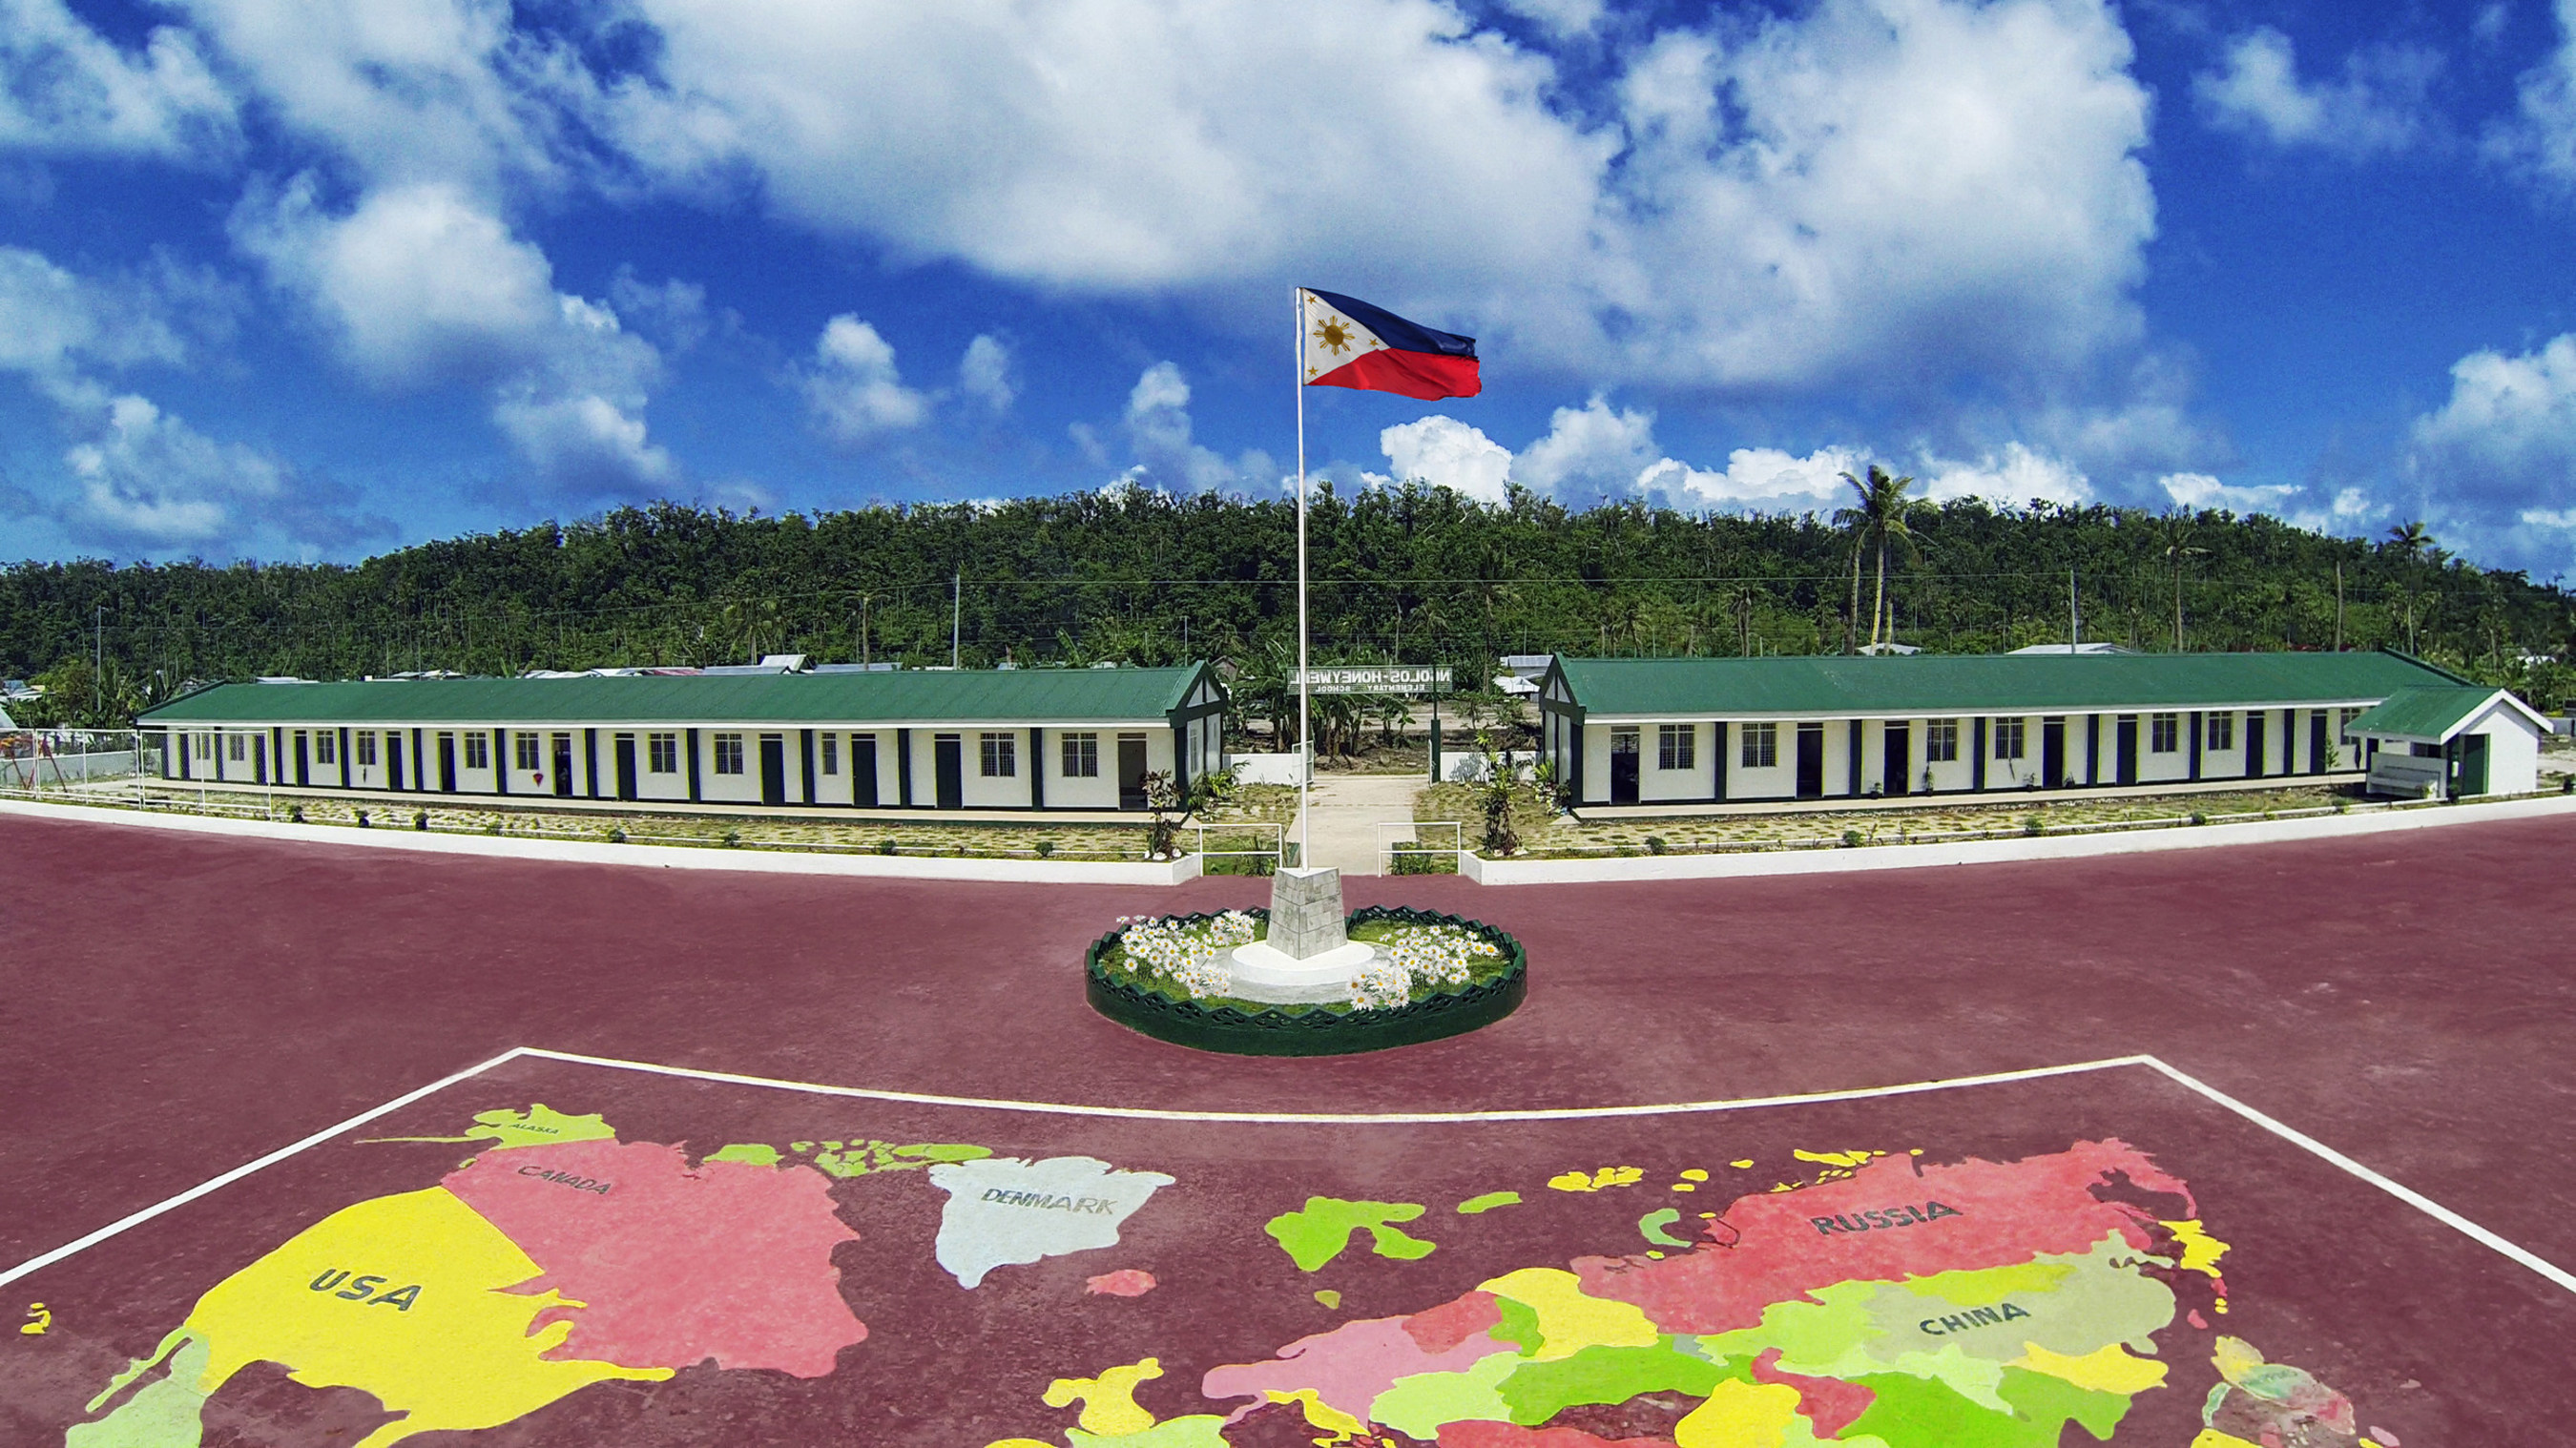 Honeywell Rebuilds School in the Philippines after Typhoon Haiyan (Yolanda)